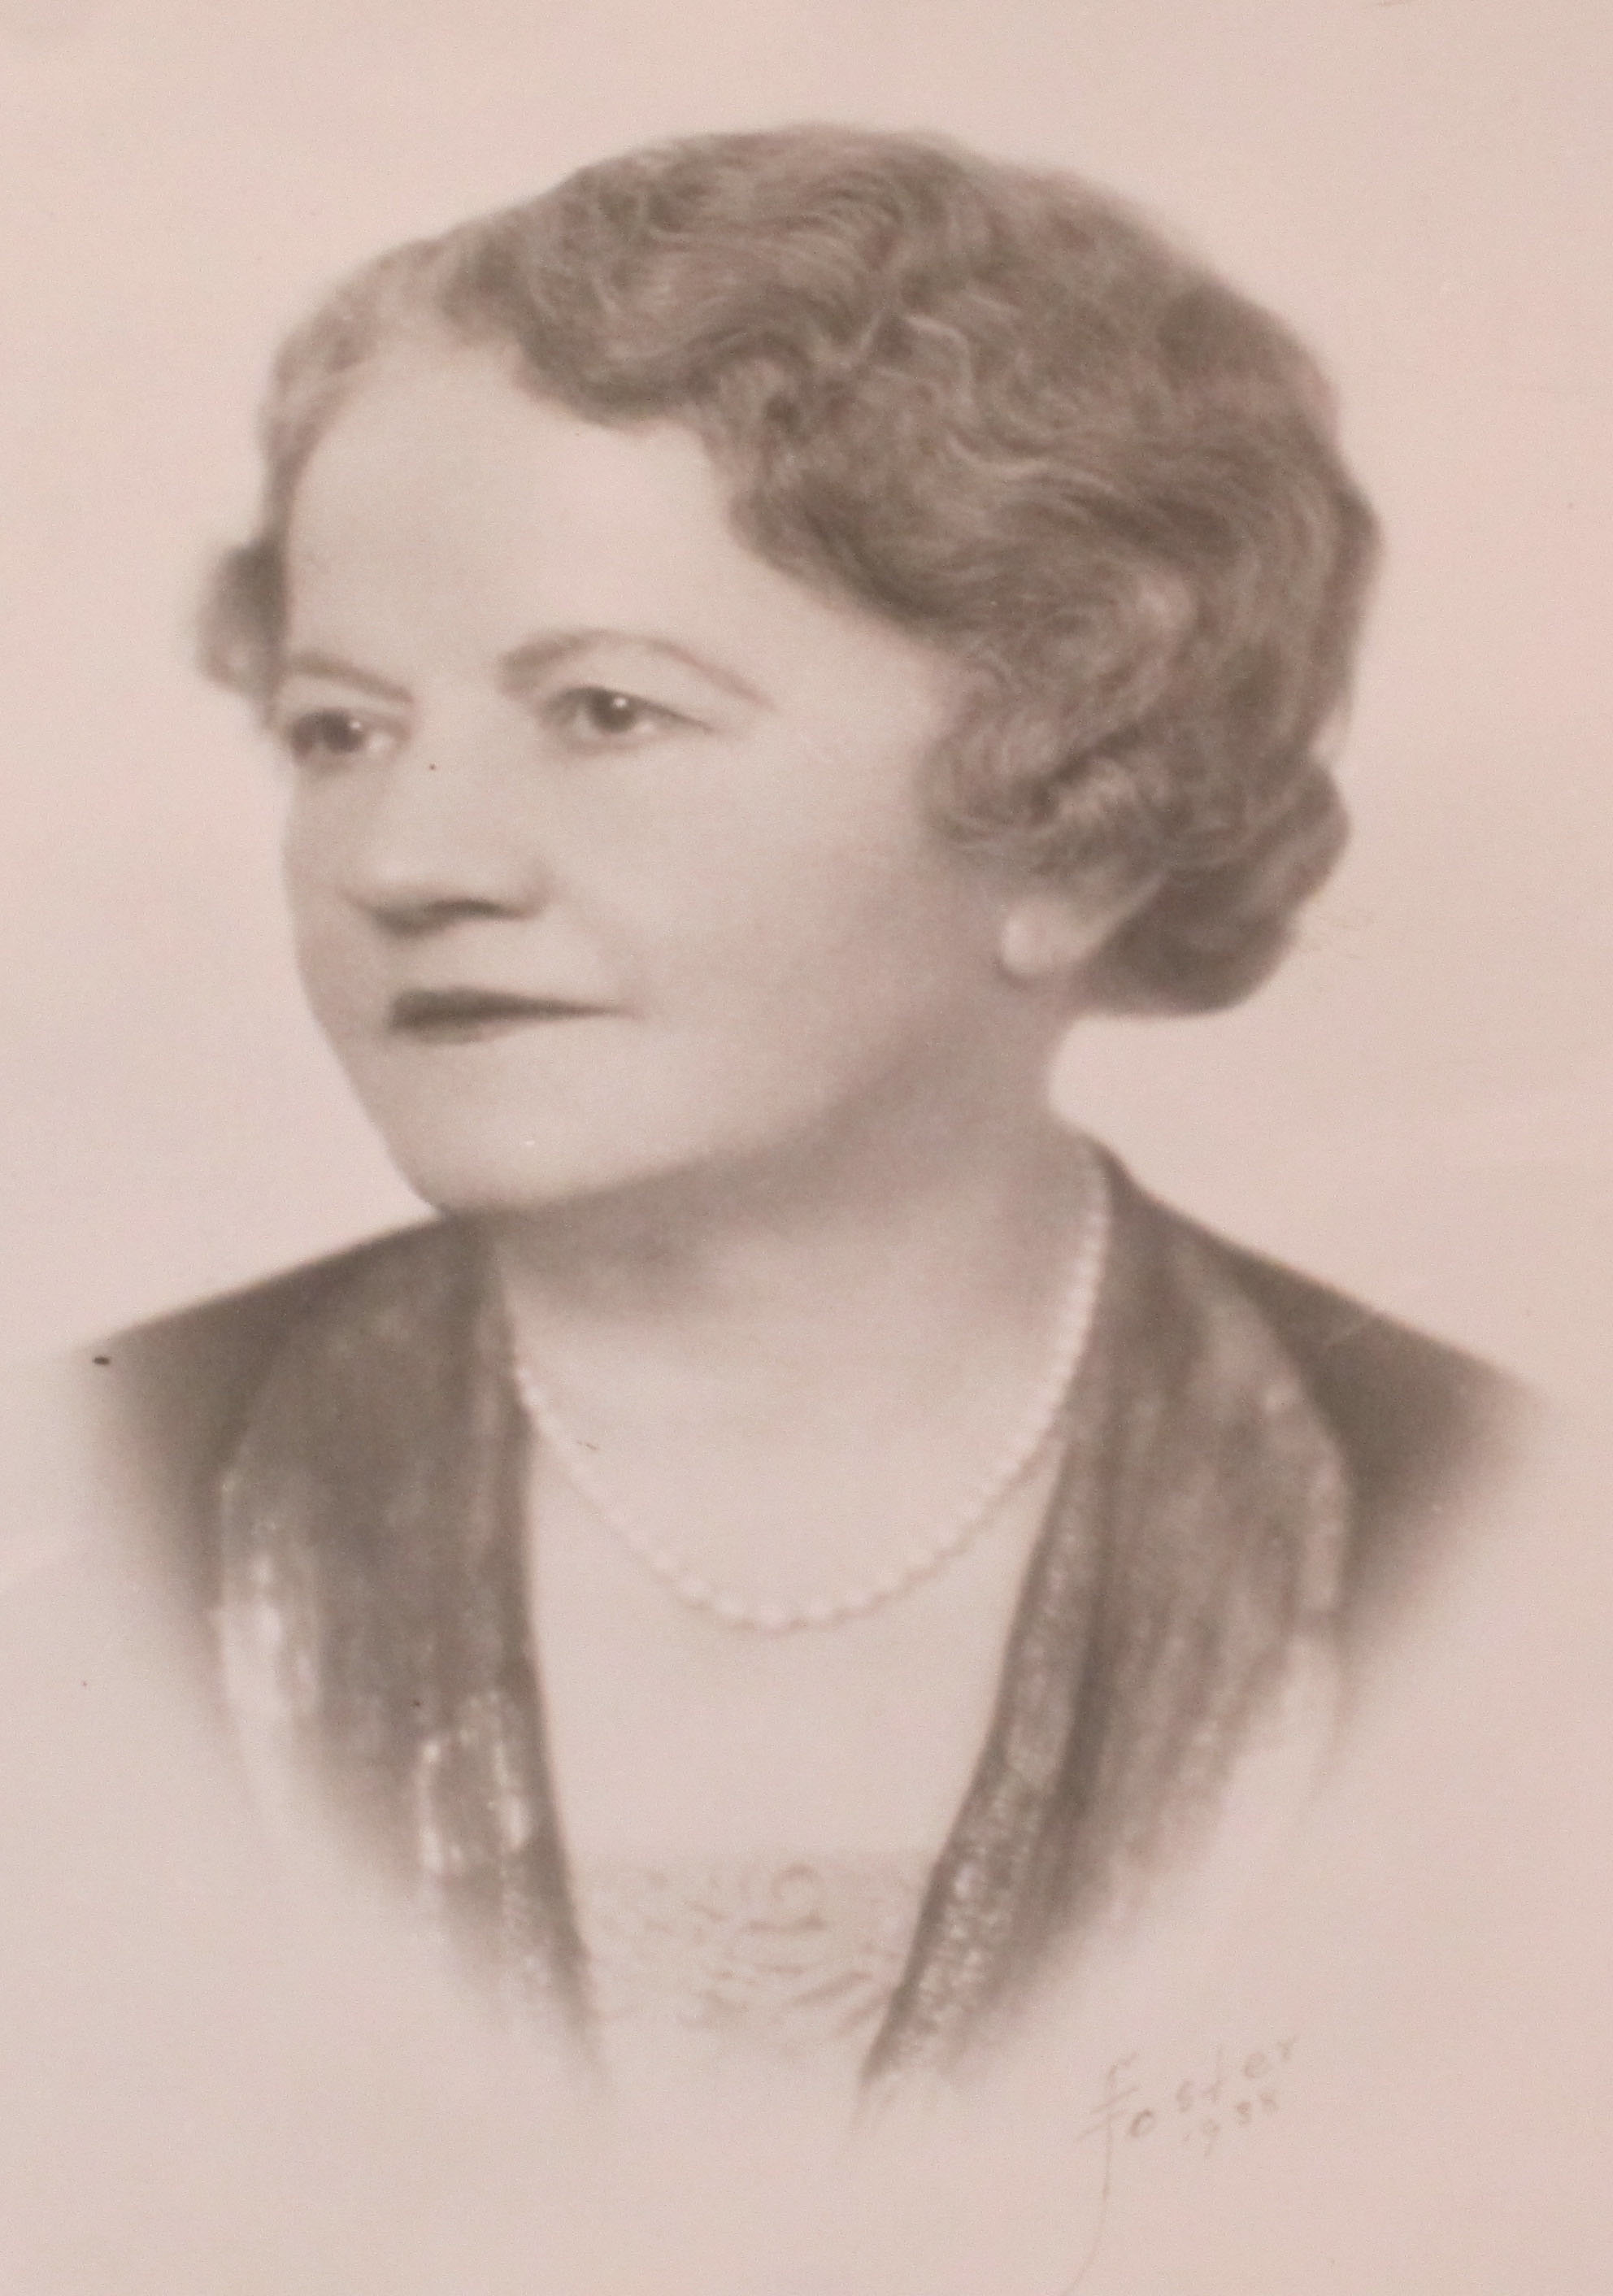 Photograph of Ellen Glasgow (1938) taken by from her book The Woman Within (MSS 5060. Photograph by Petrina Jackson)